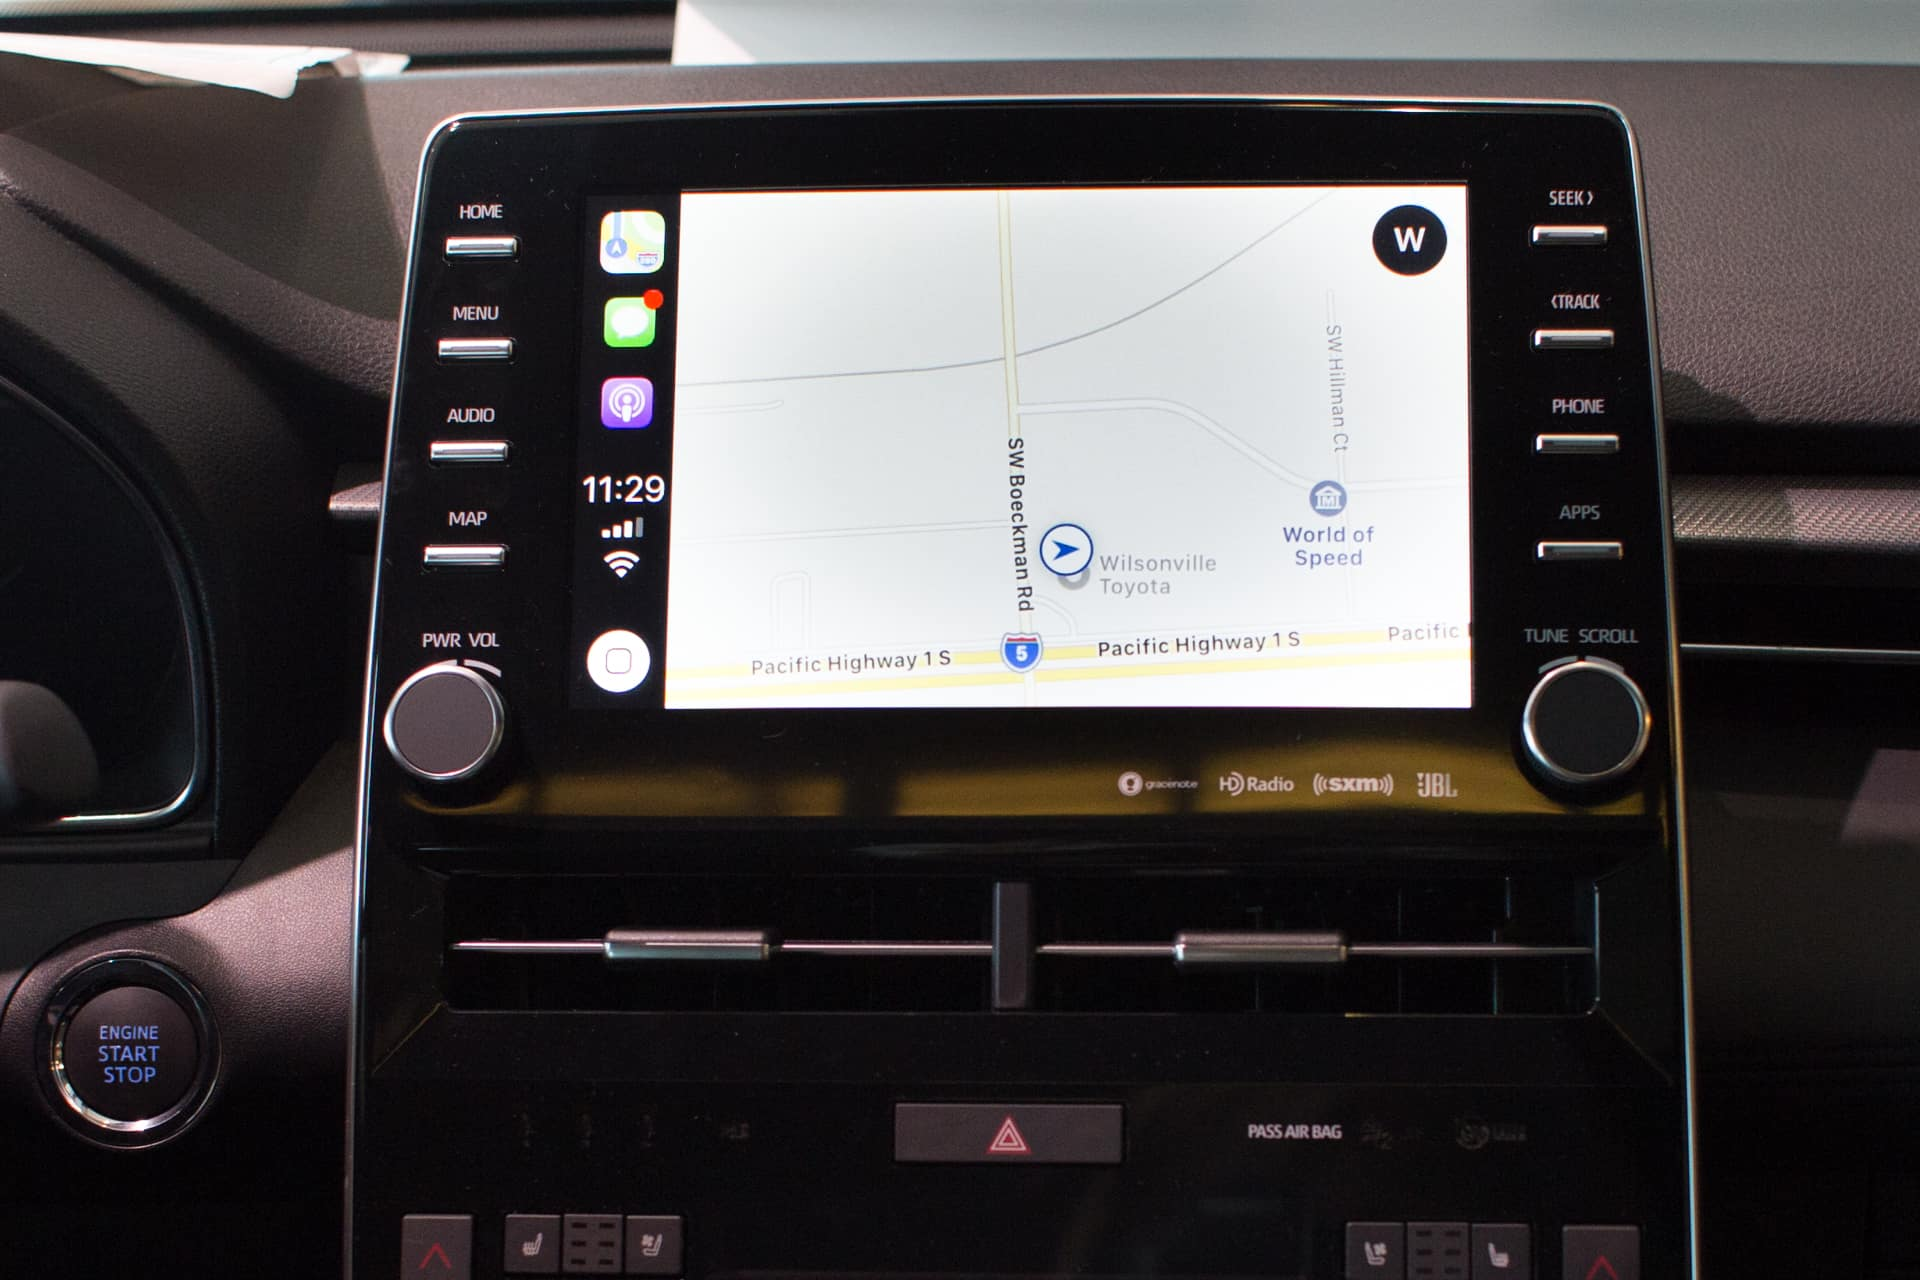 About Apple CarPlay and Toyota | Wilsonville Toyota